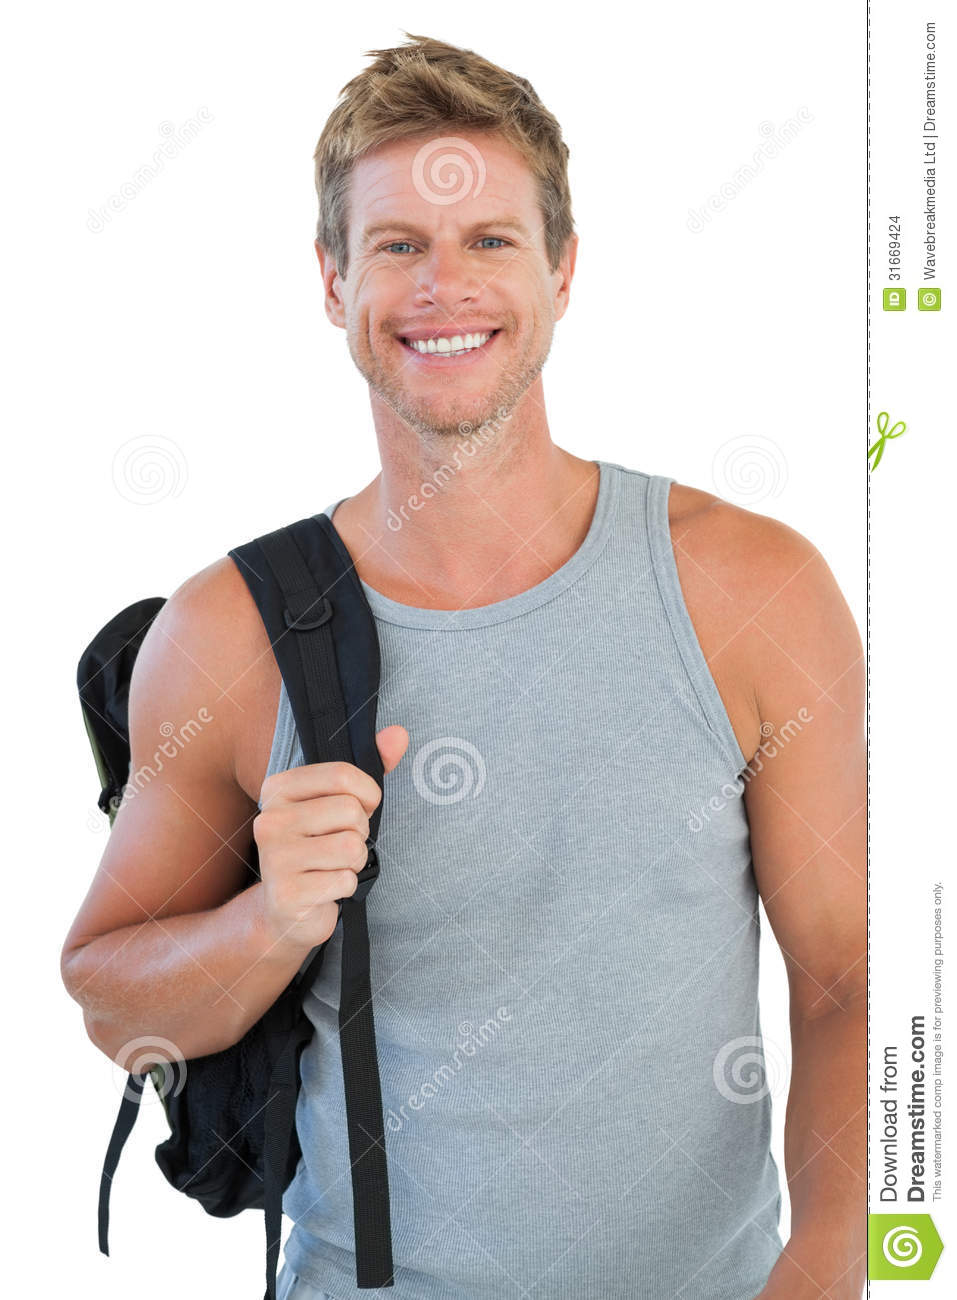 Smiling Man In Sportswear Holding Backpack Stock Photo ...